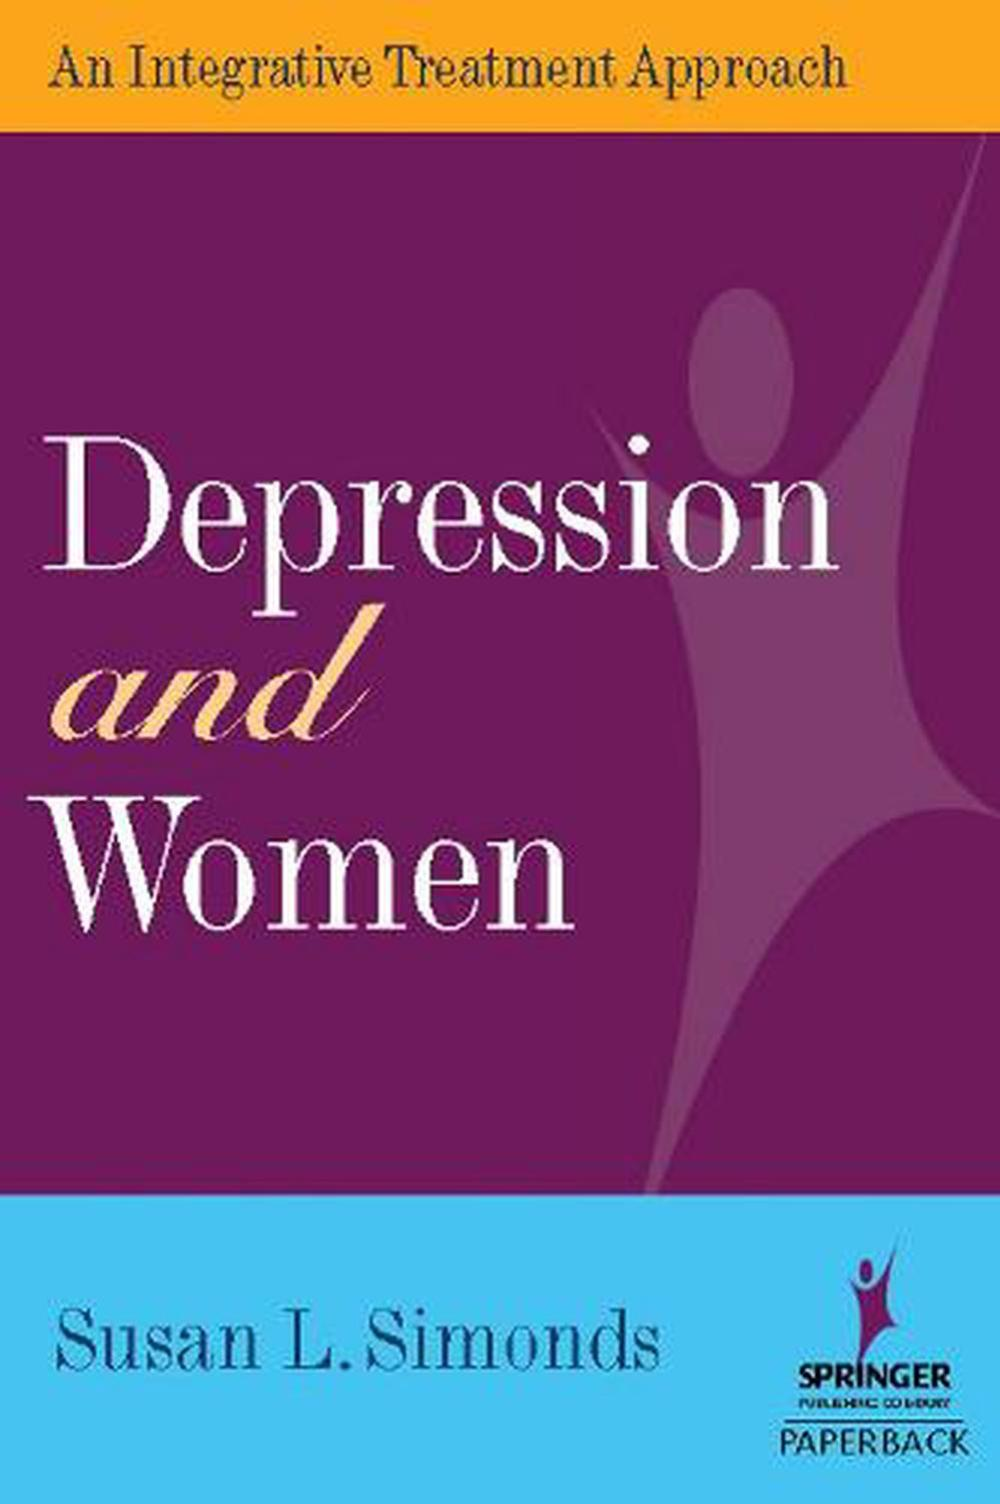 An Integrated Approach to Treat Depression